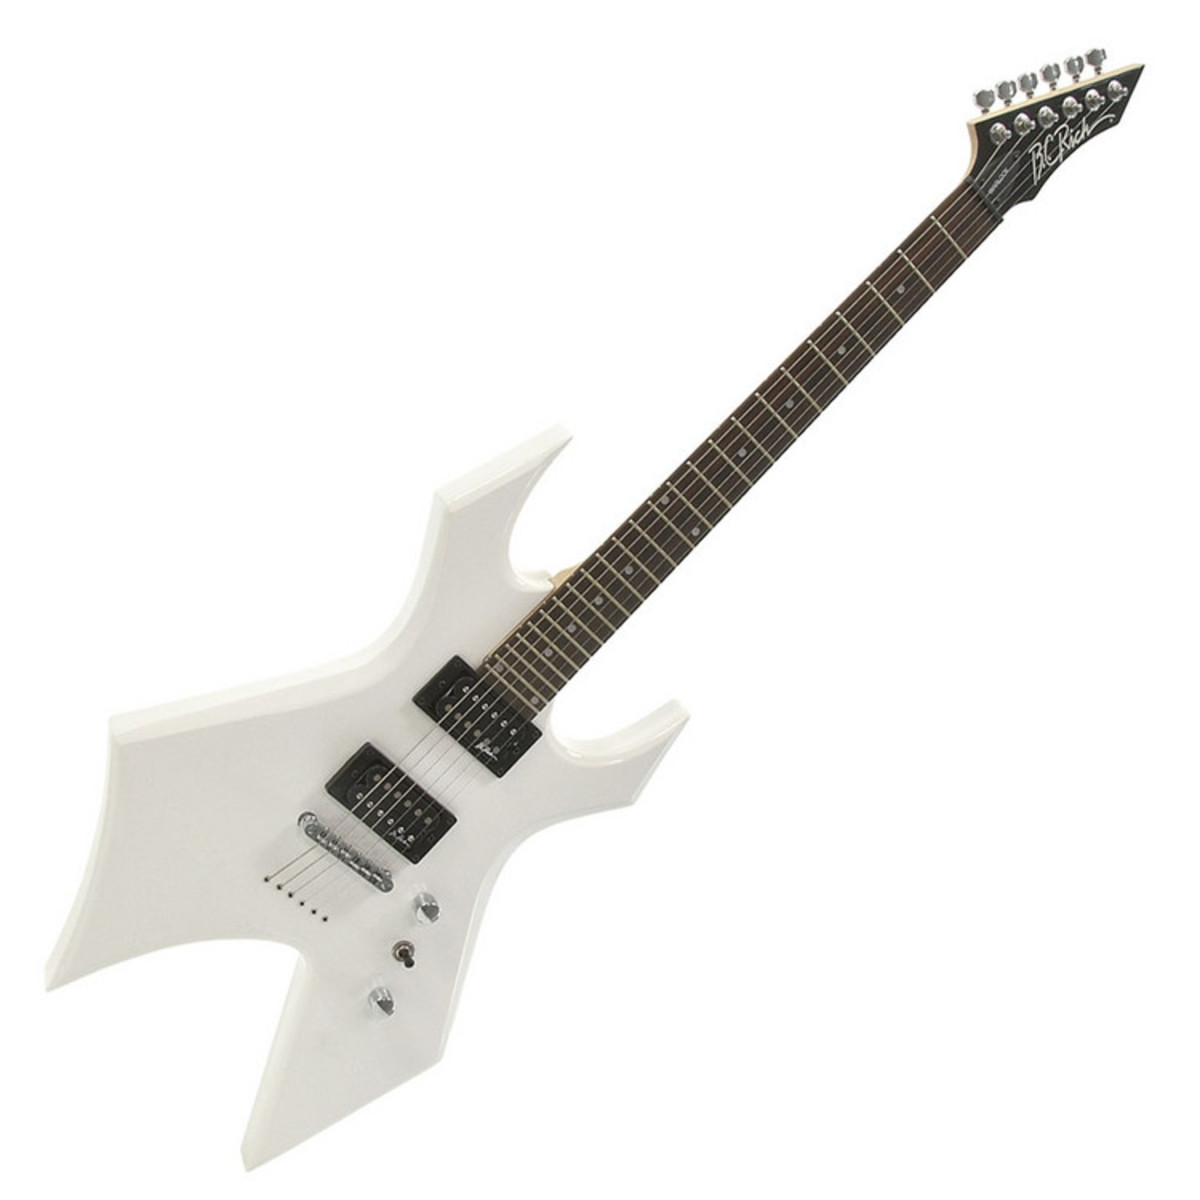 disc bc rich warlock one guitar white with multi fx pedal pack at. Black Bedroom Furniture Sets. Home Design Ideas